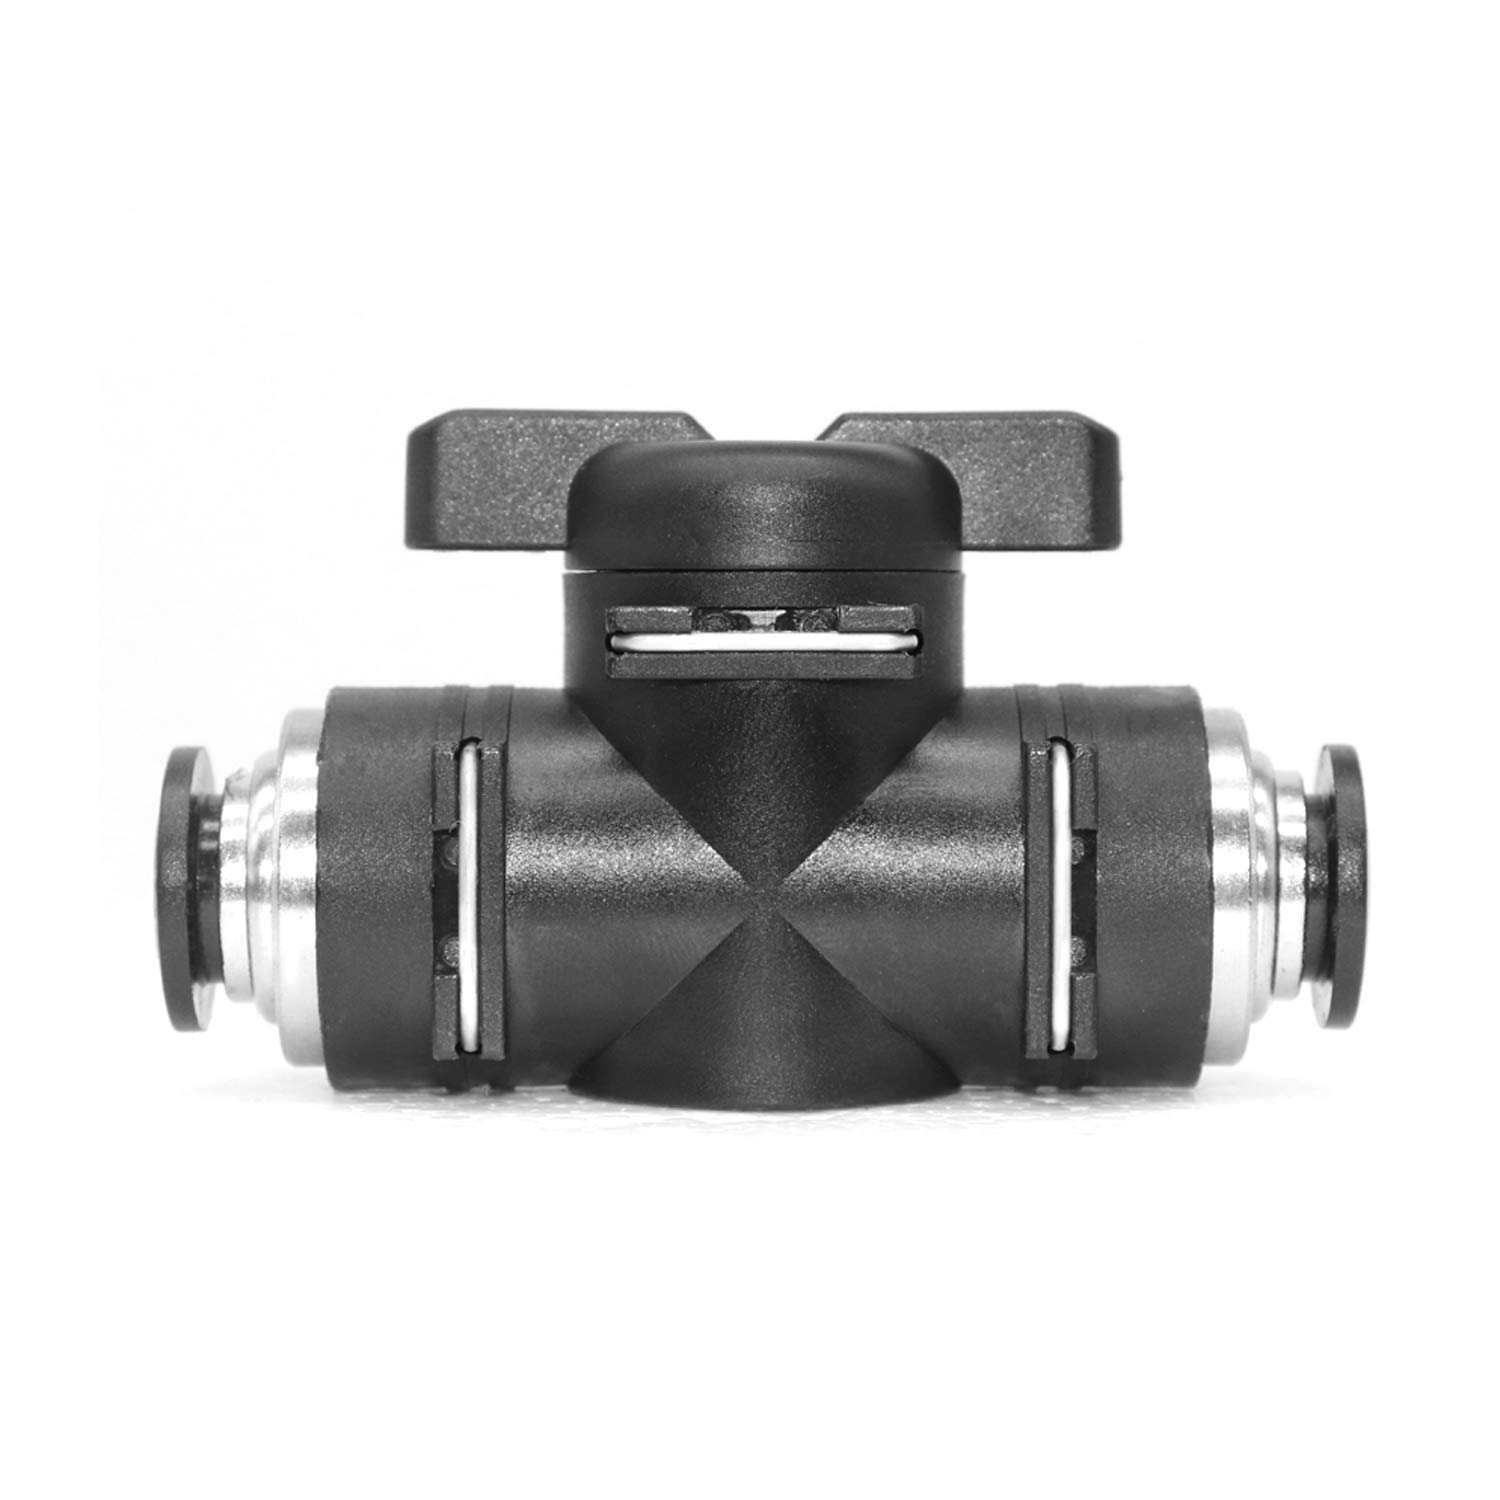 1//4 x 1//4 OD Push to Connect Fitting Air Flow Control Valve Pneumatic Ball Valve Air Tube Hand Valve Straight Quick Connect Union